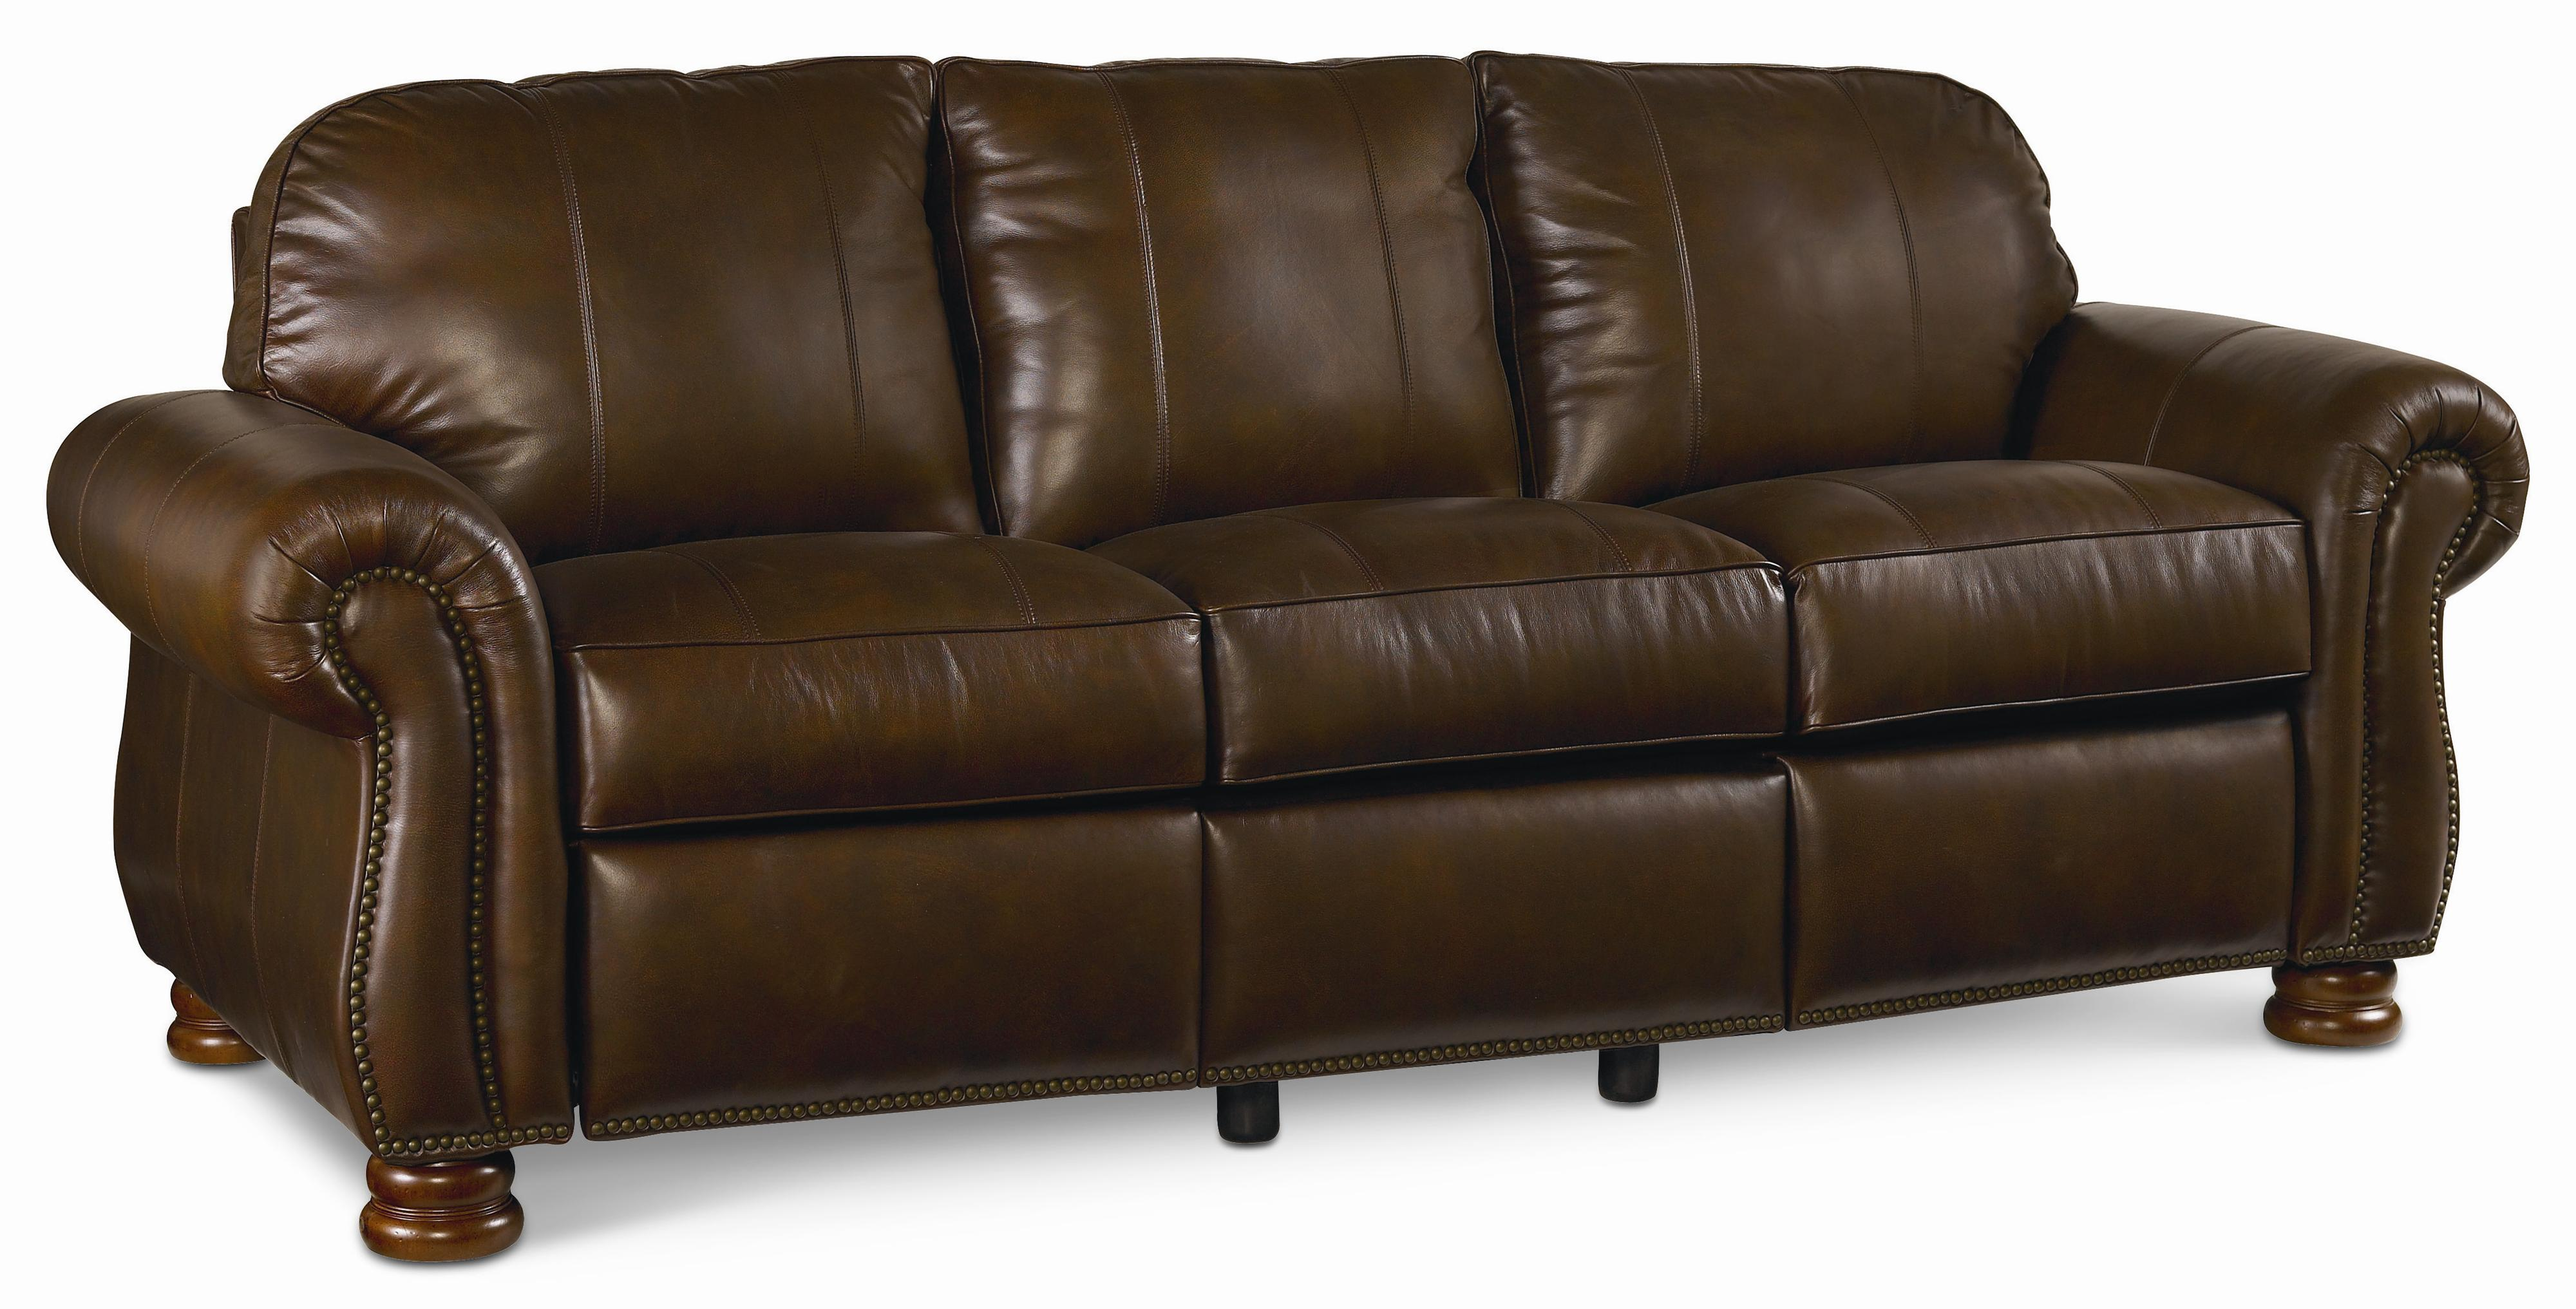 Thomasville® Leather Choices   Benjamin Select Plus 3 Seat Leather Motion  Sofa | Sprintz Furniture | Reclining Sofa Nashville, Franklin, ...